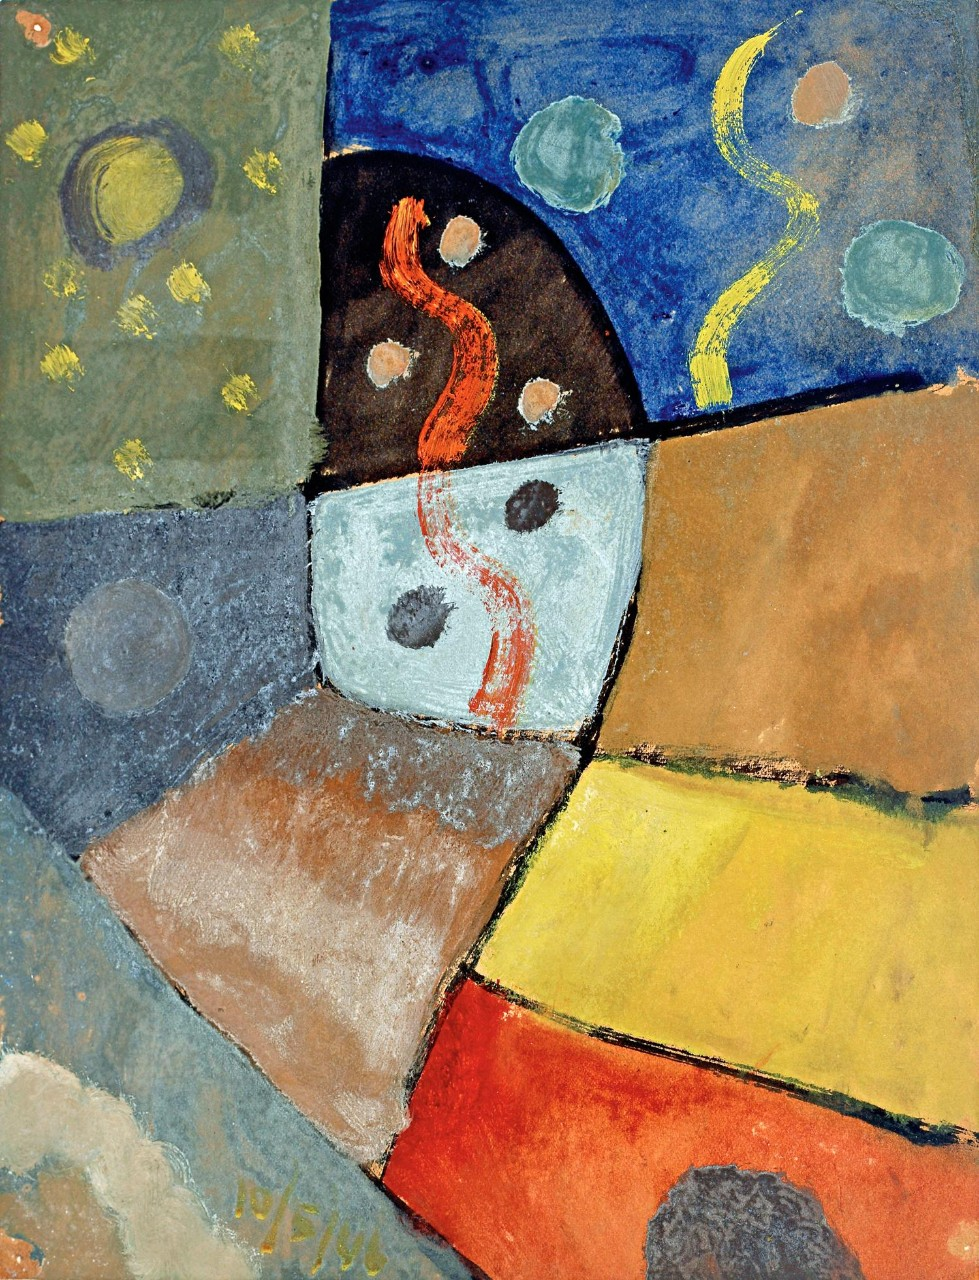 Esteban Lisa (1895–1983), Composición (Composition), c. 1946 _ oil on cardboard, 30 x 23 cm, private collection © Fundación Esteban Lisa